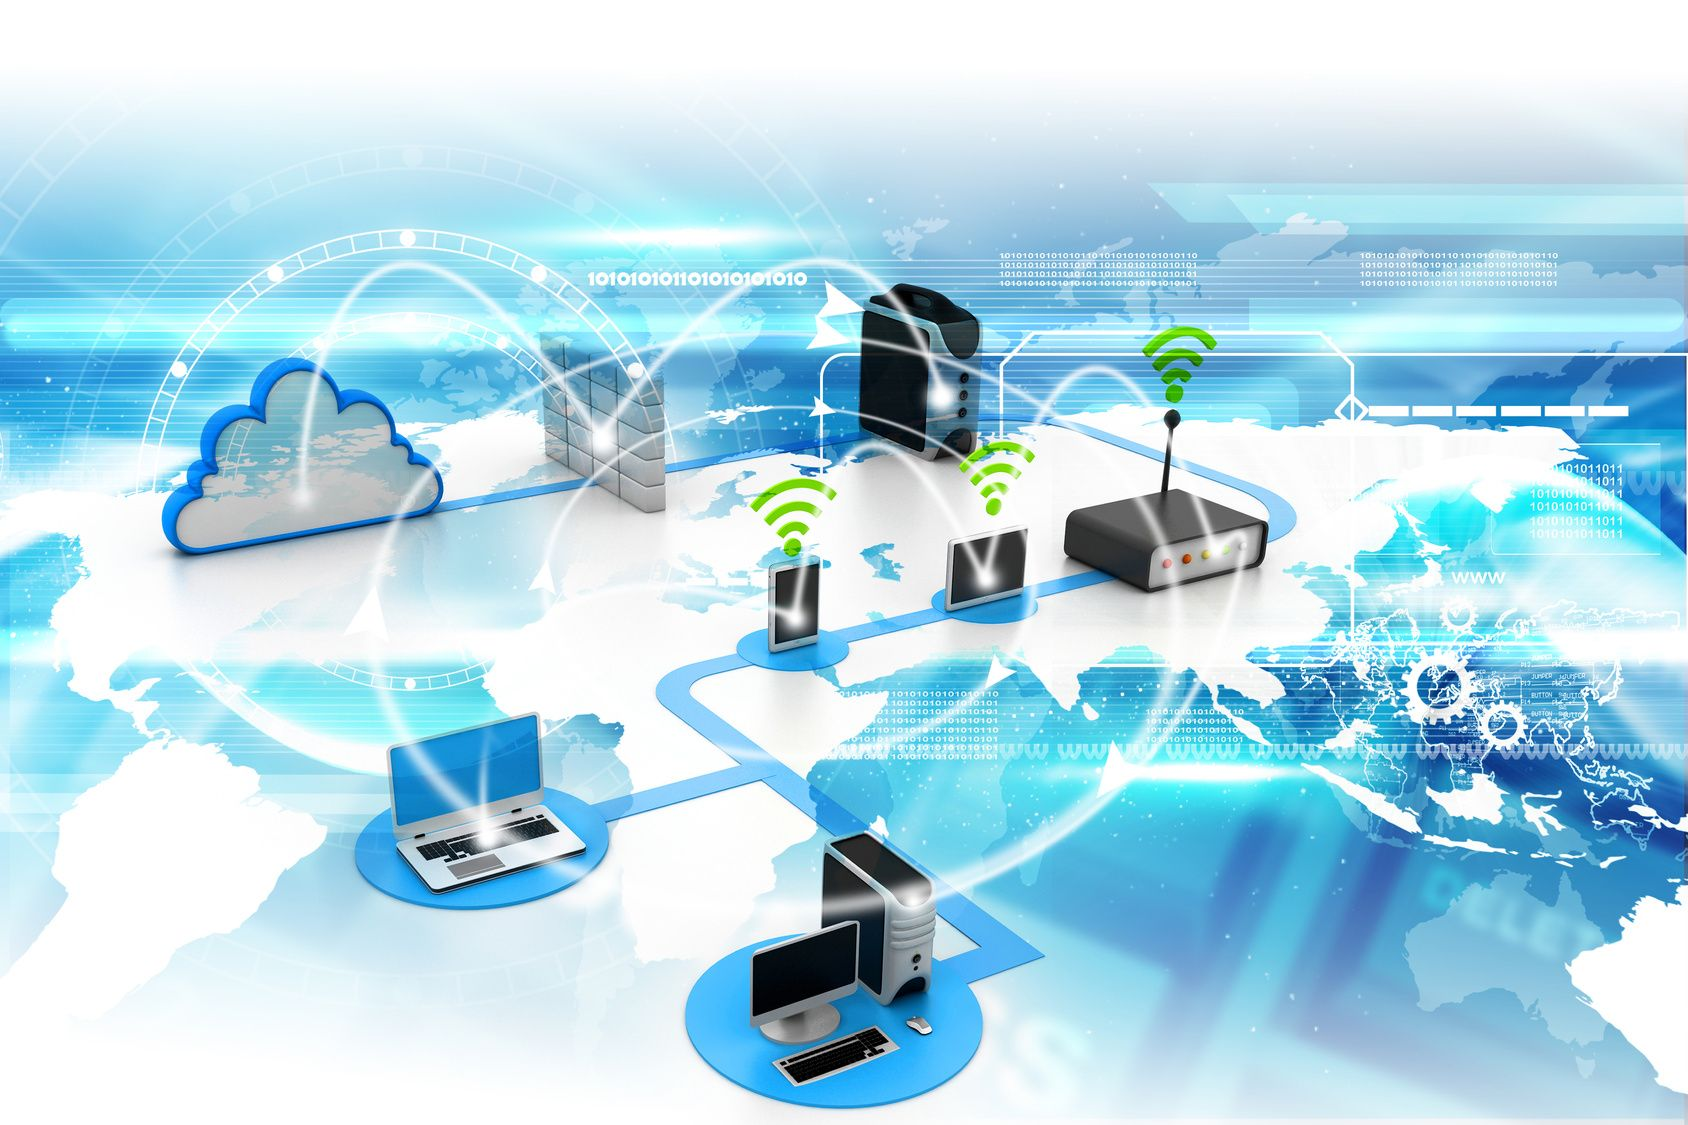 Digital illustration of Cloud computing devices WiFi